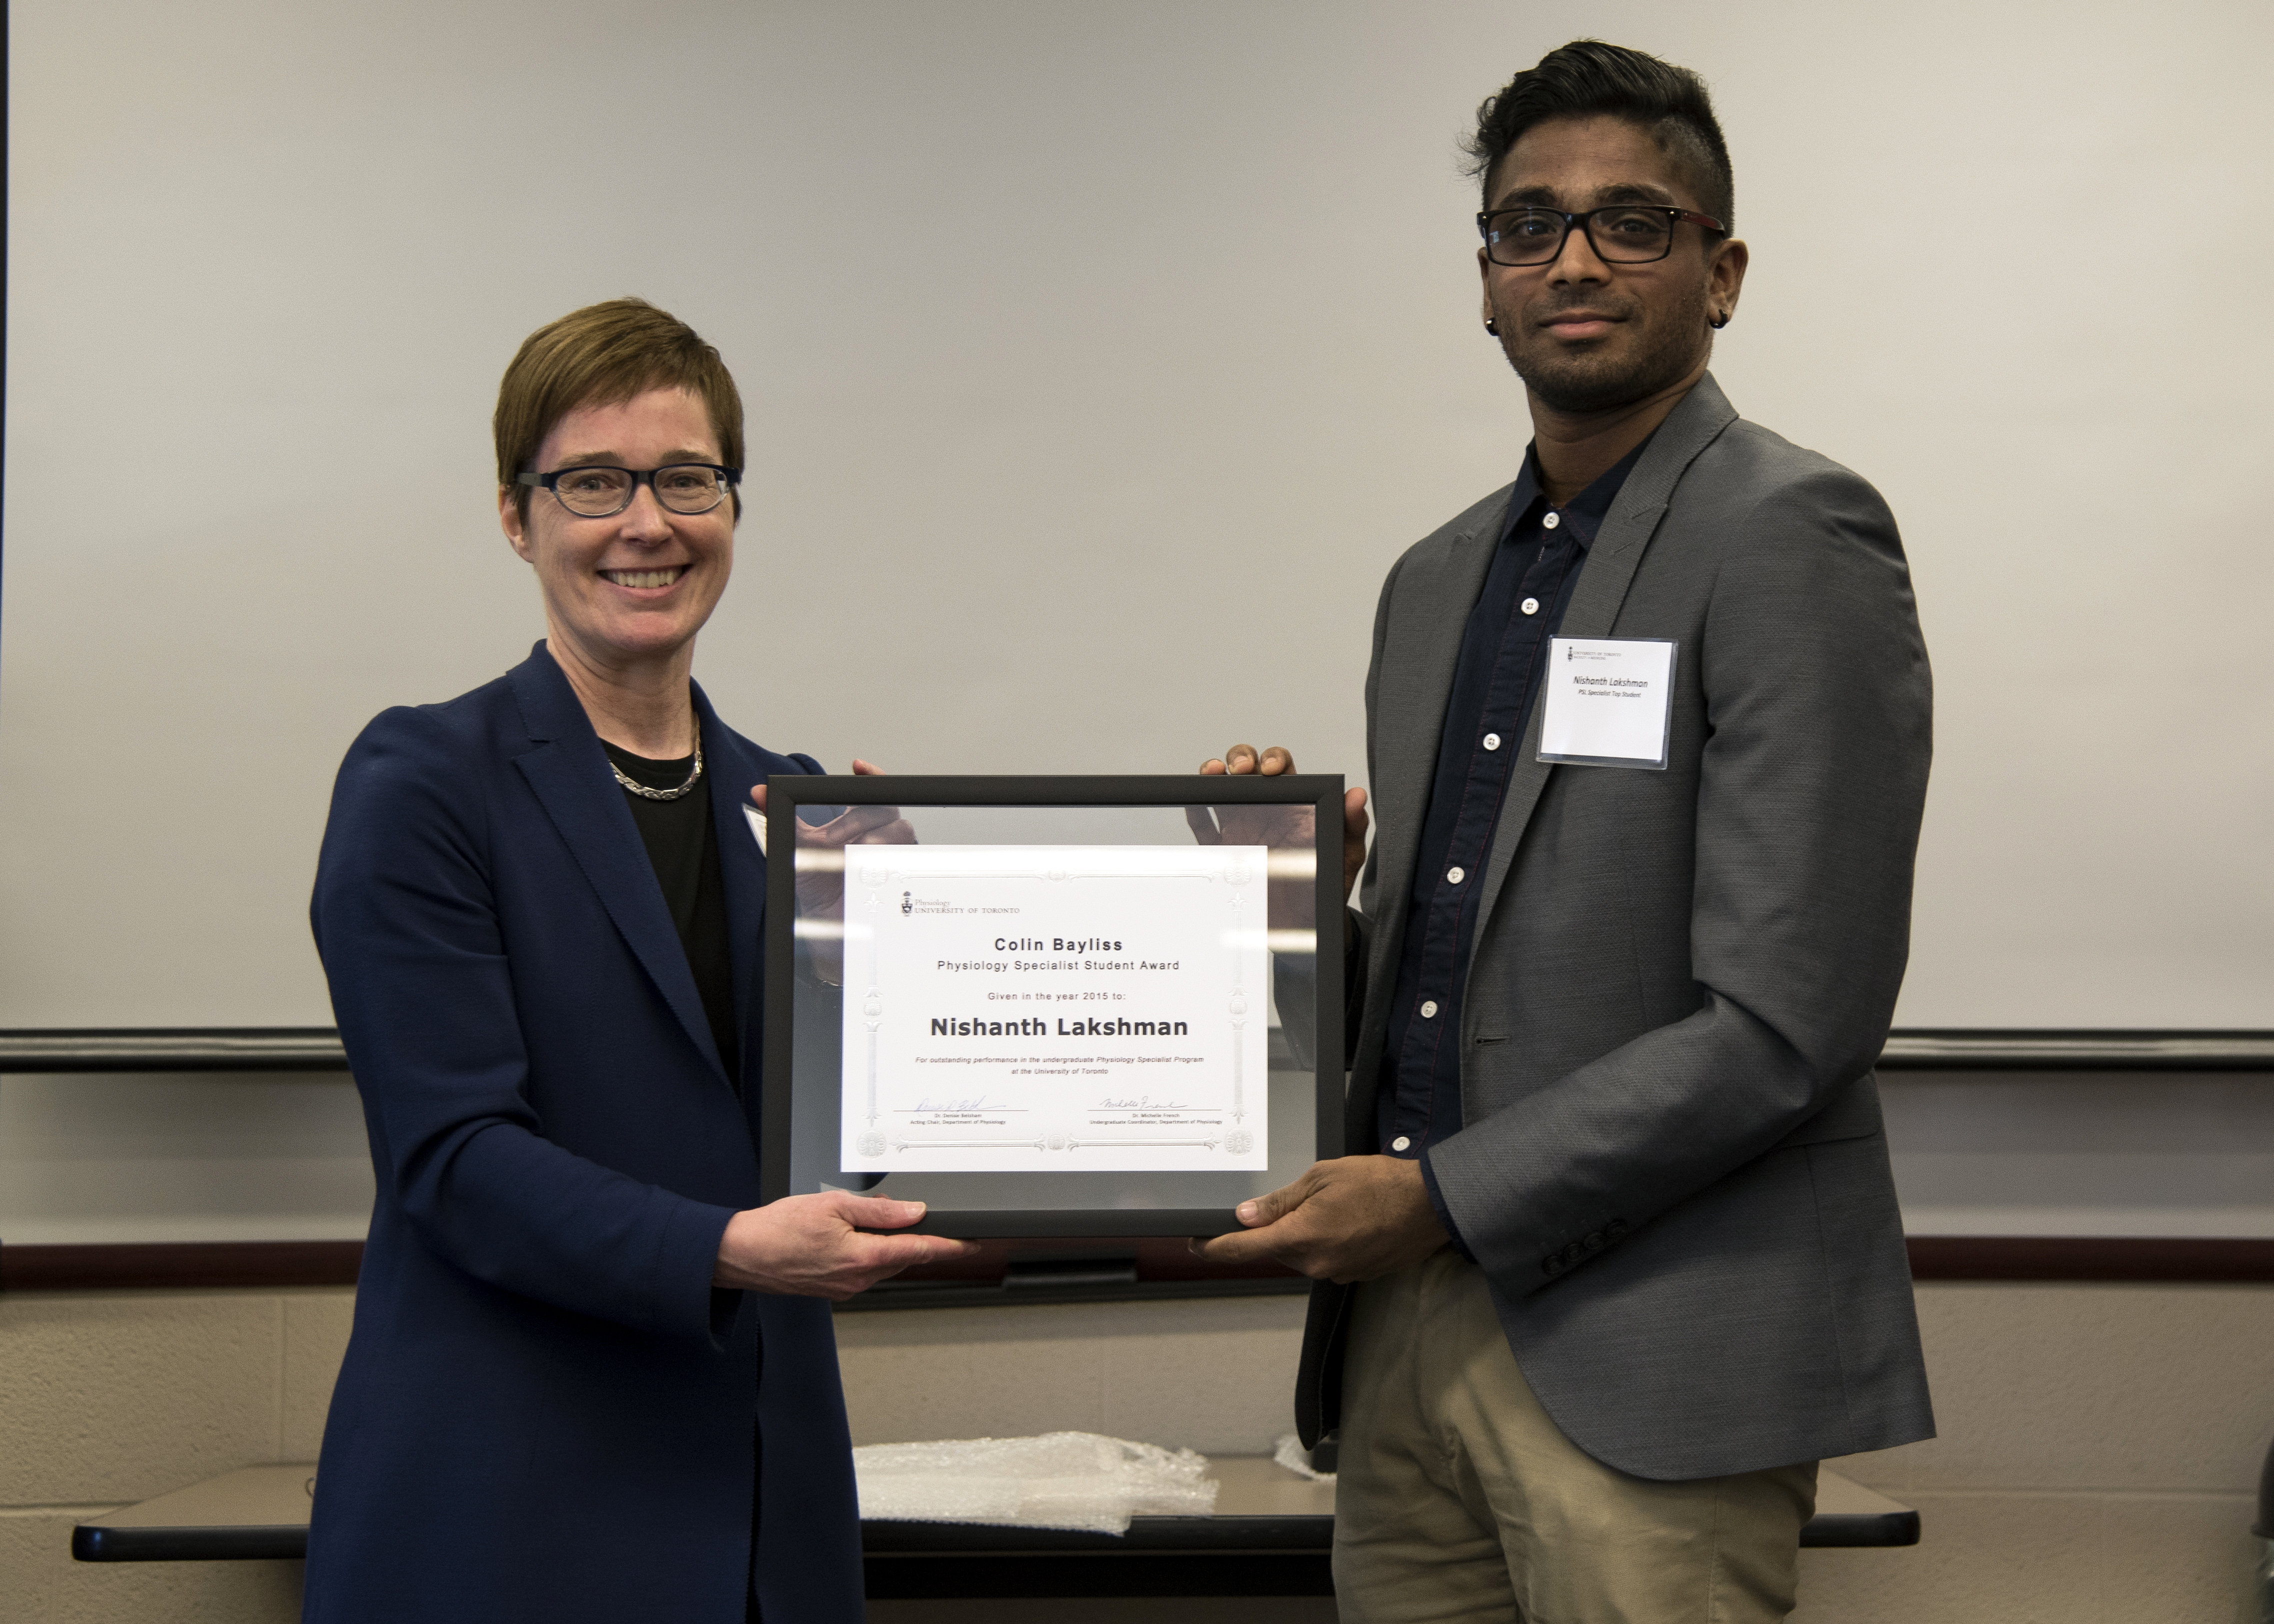 Dr. Michelle French and Nishanth Lakshman